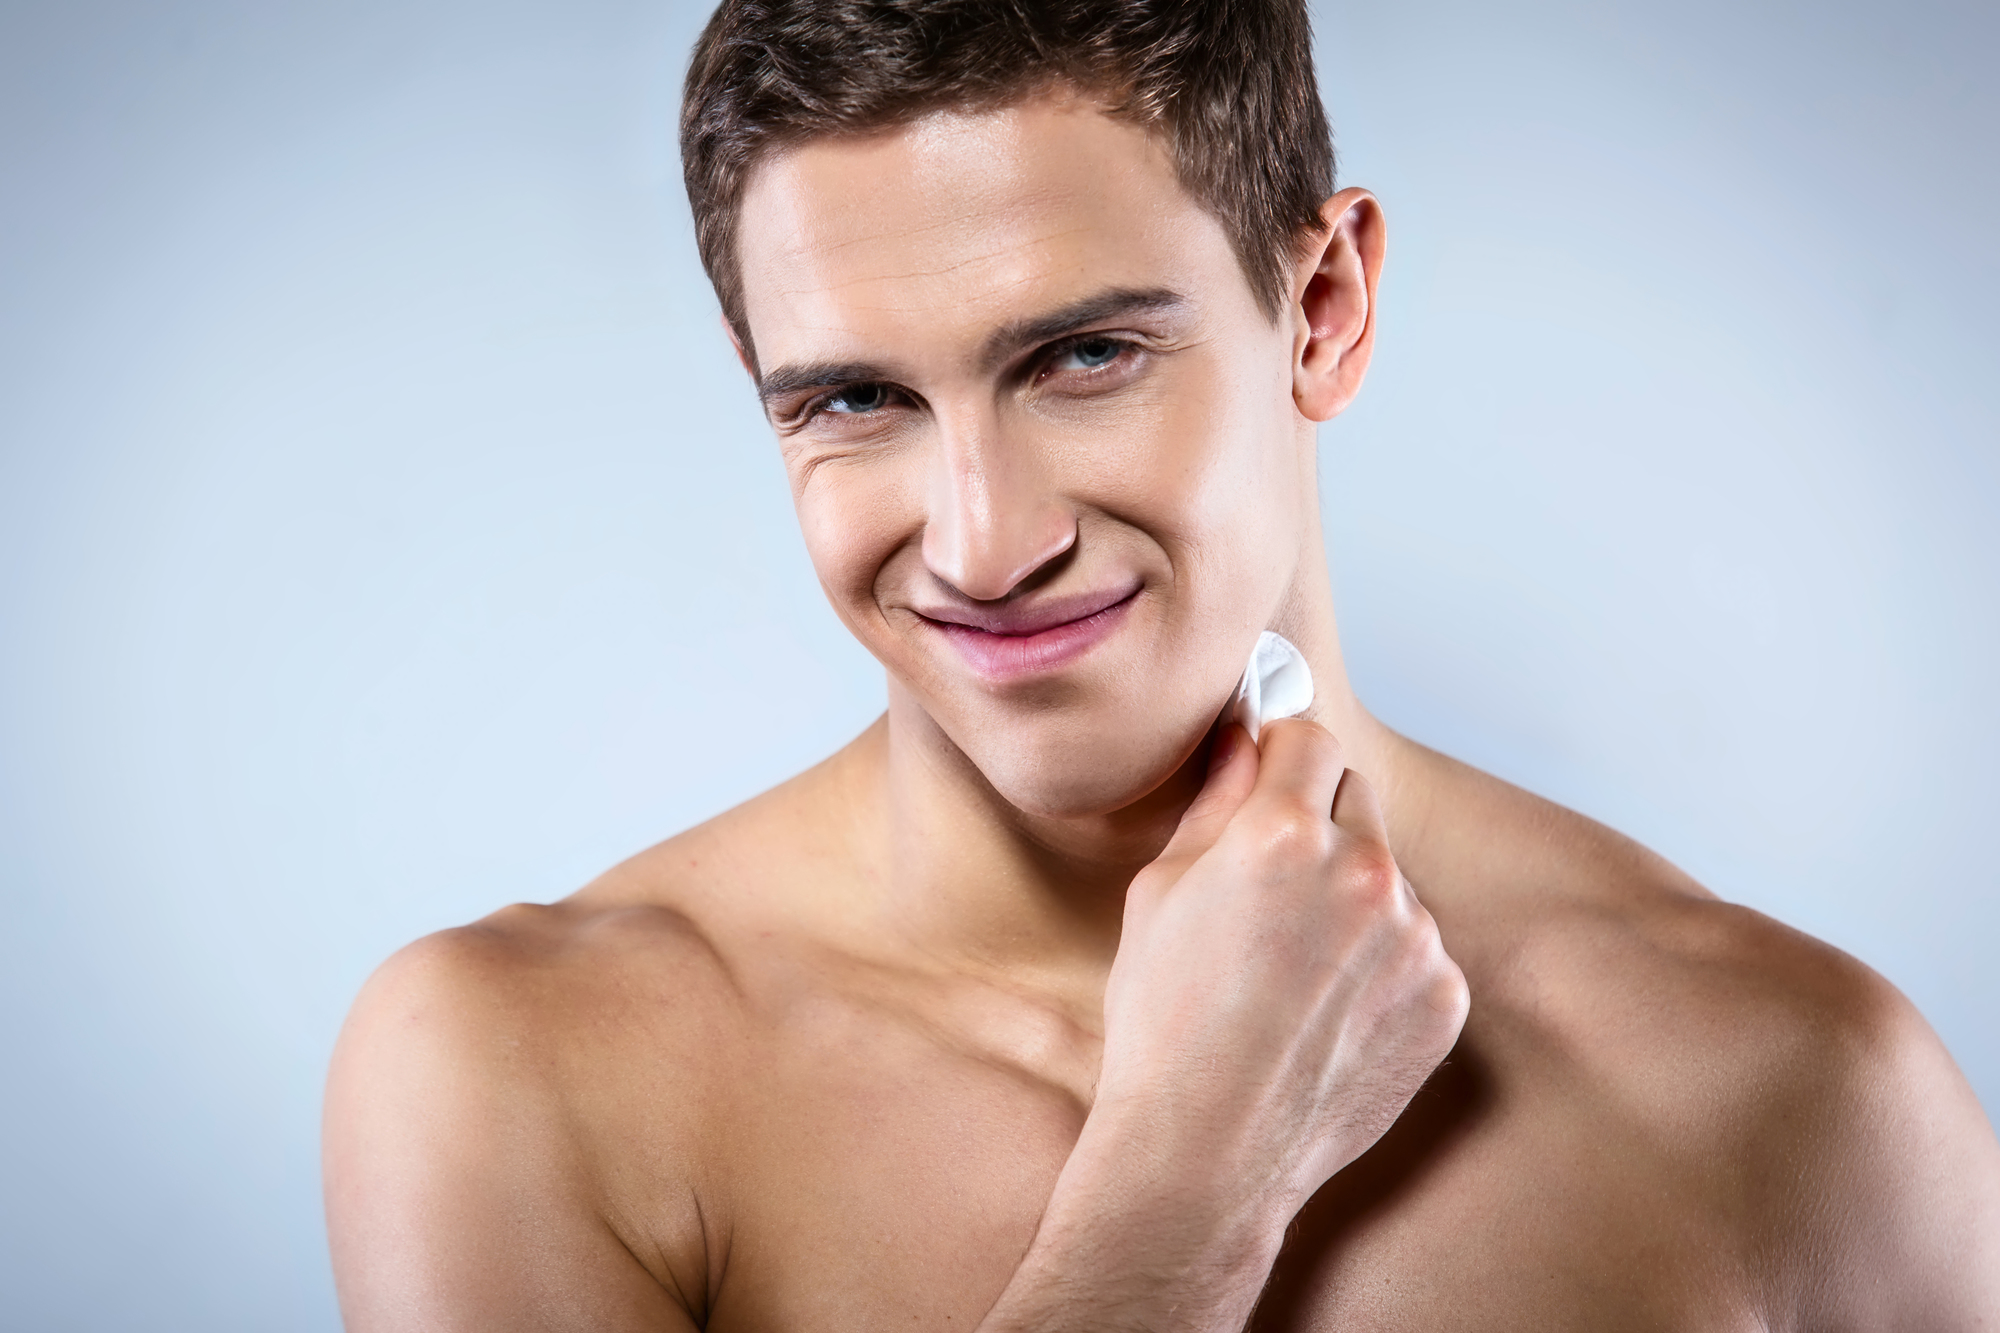 Studio shot of handsome young man with naked torso. Muscular man looking at camera and wiping face with lotion and cotton pad